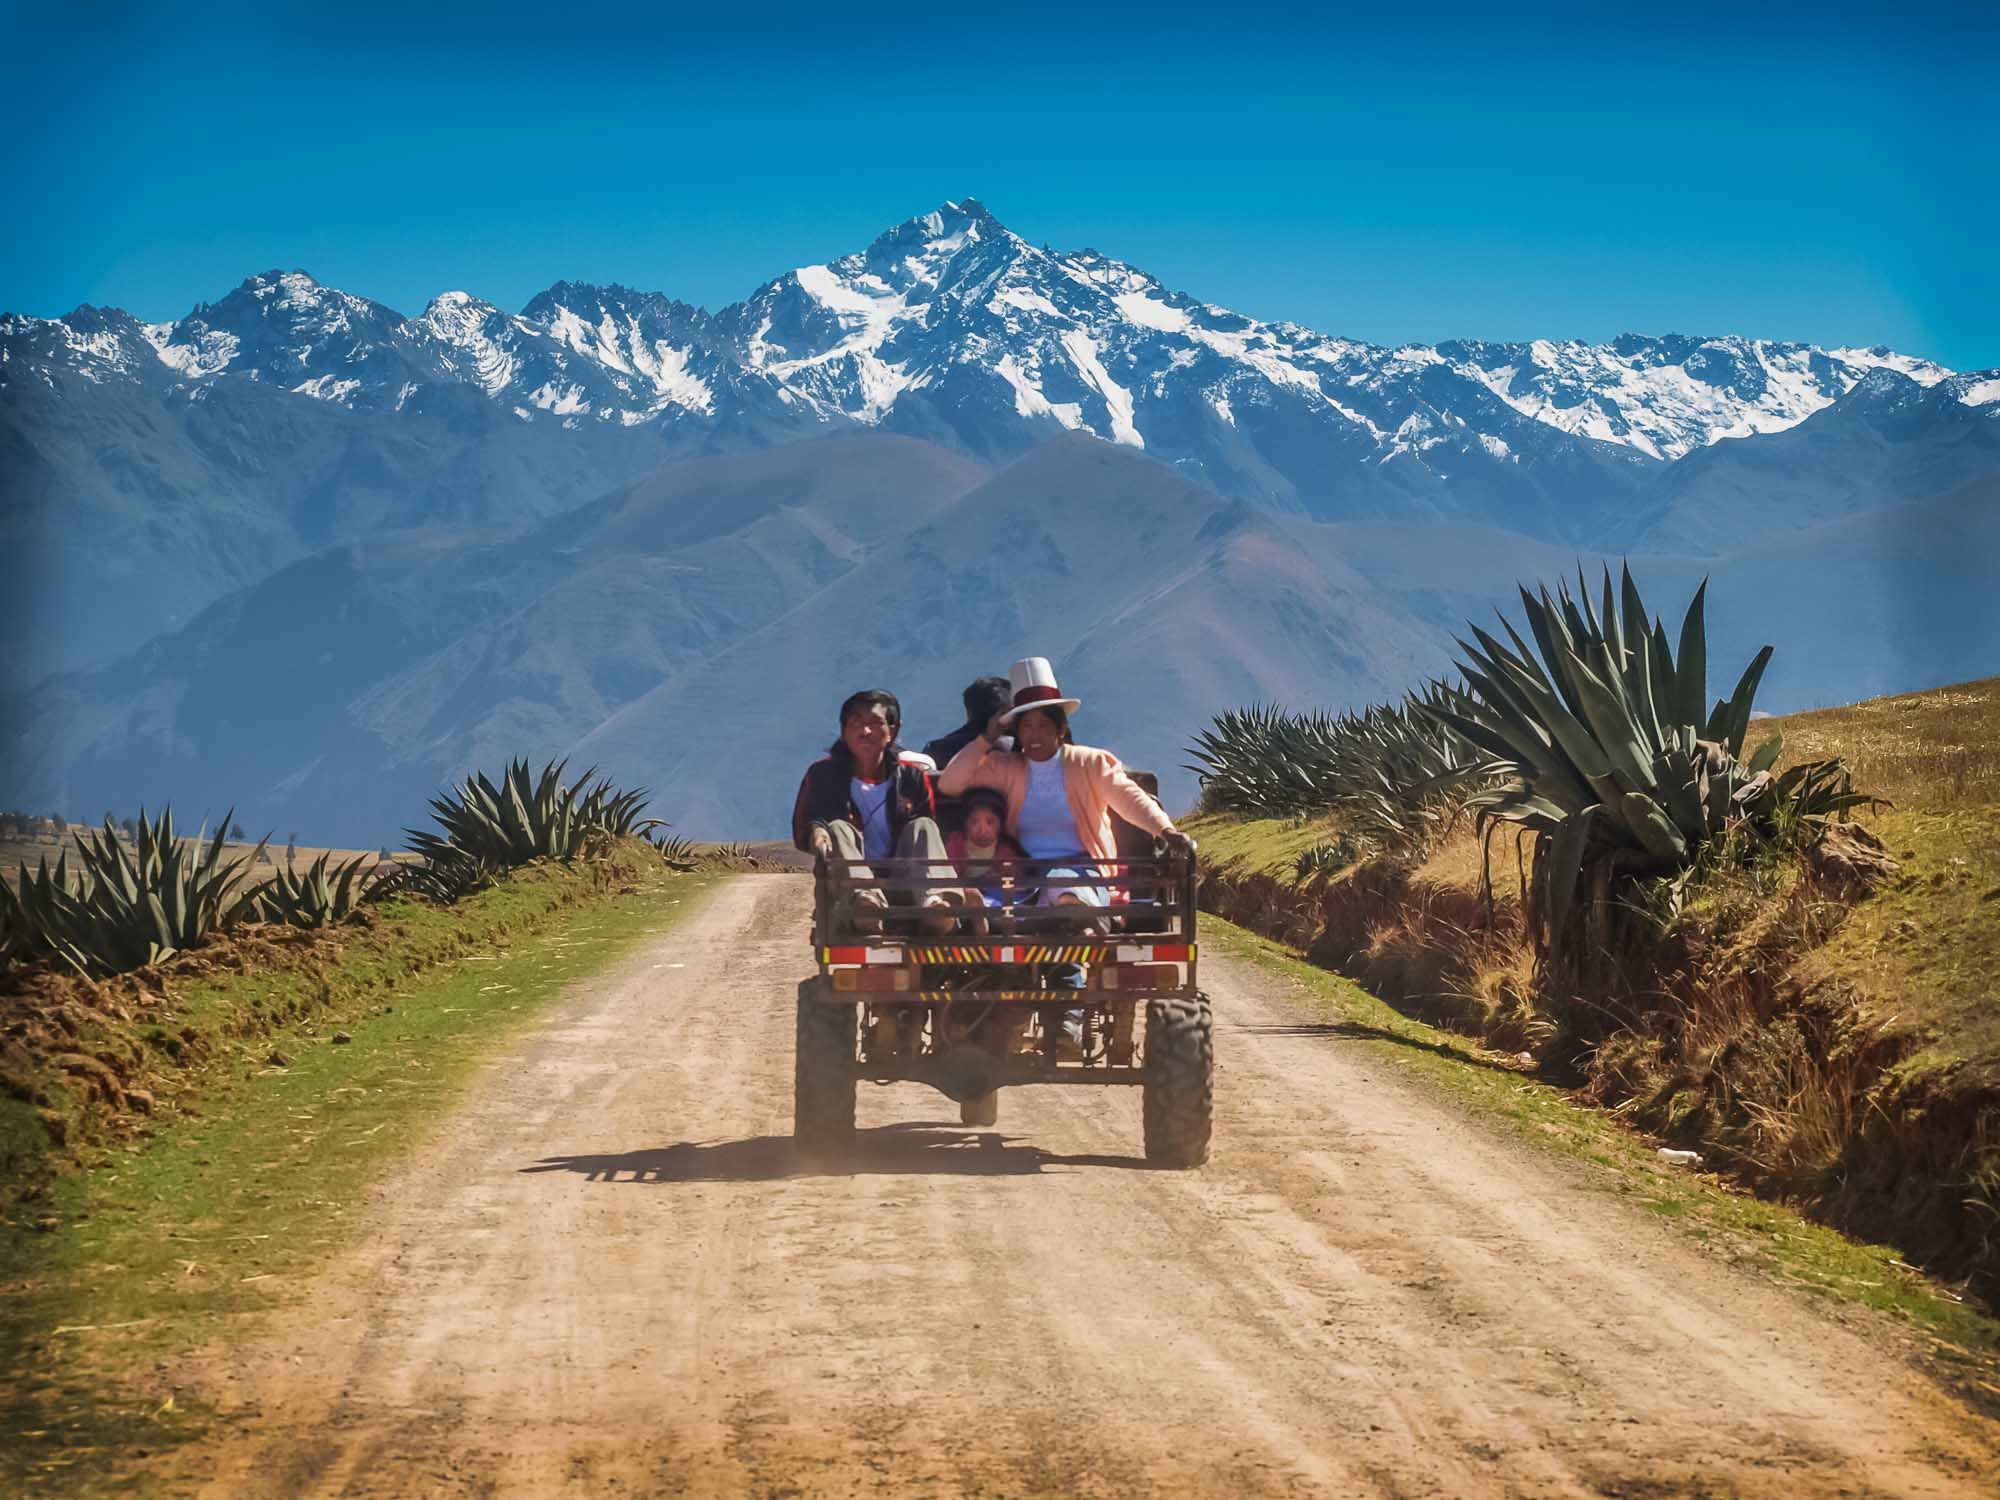 Peruvian family riding on the back of a tiny truck through a spectacular mountain landscape